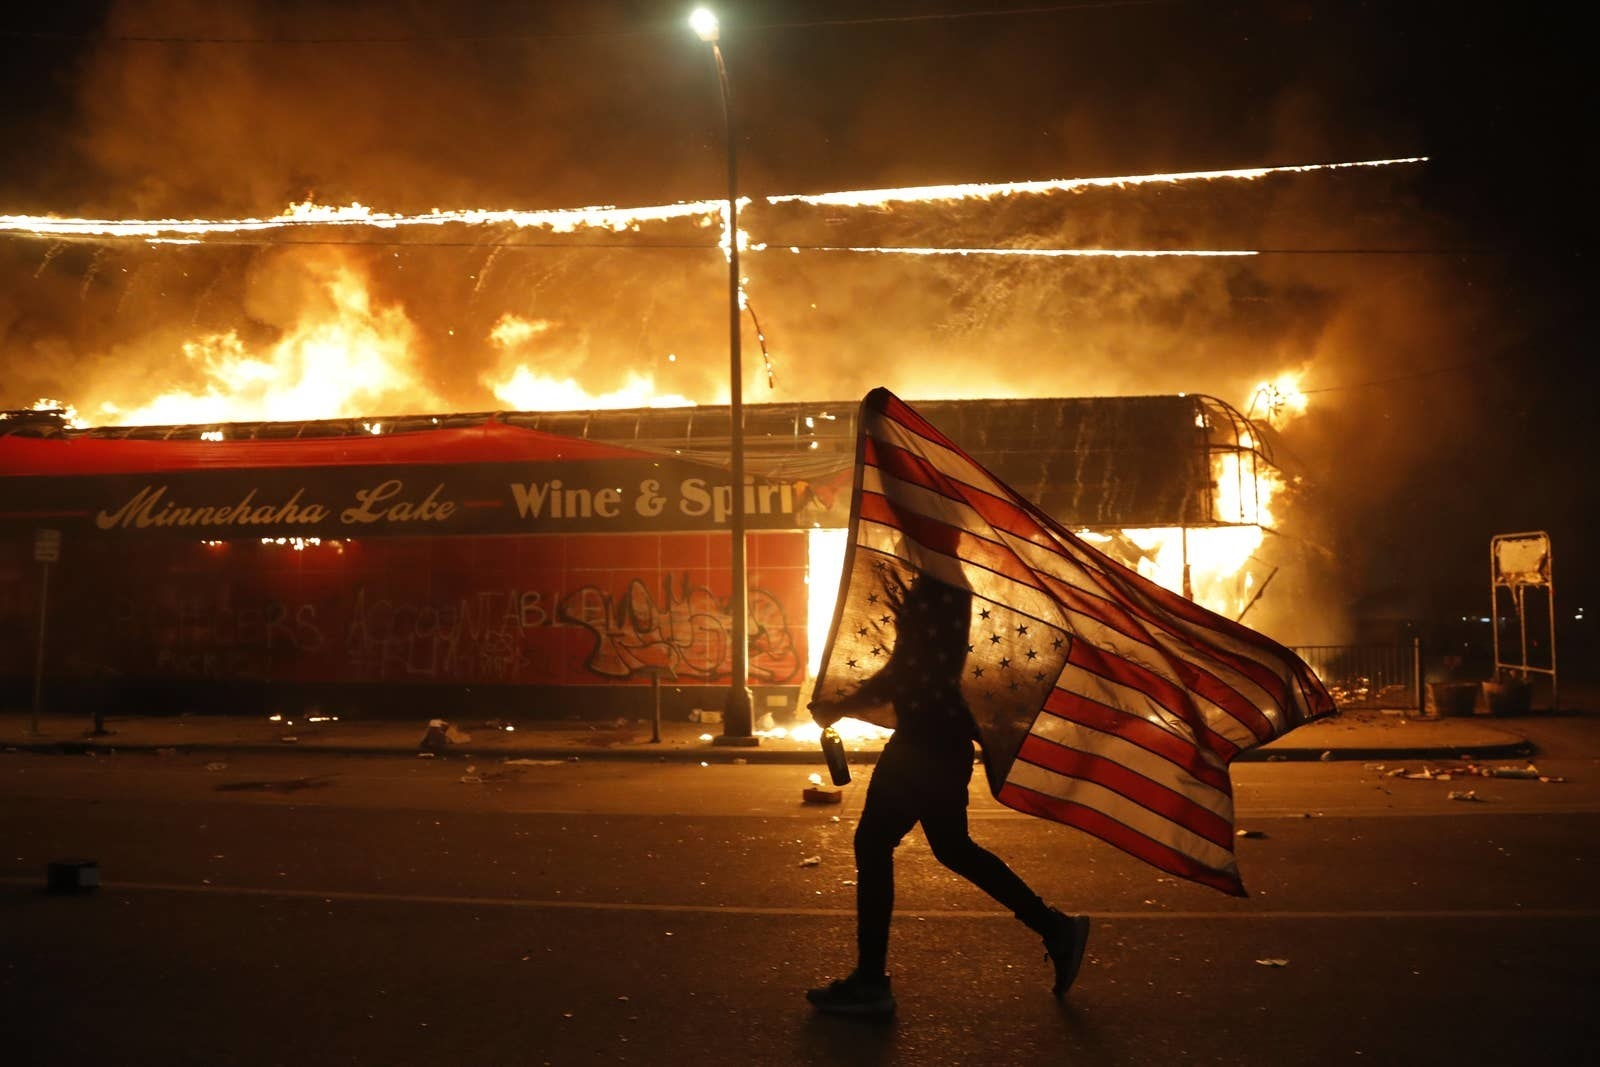 A man carrying an upside-down US flag walks by a burning liquor store at night